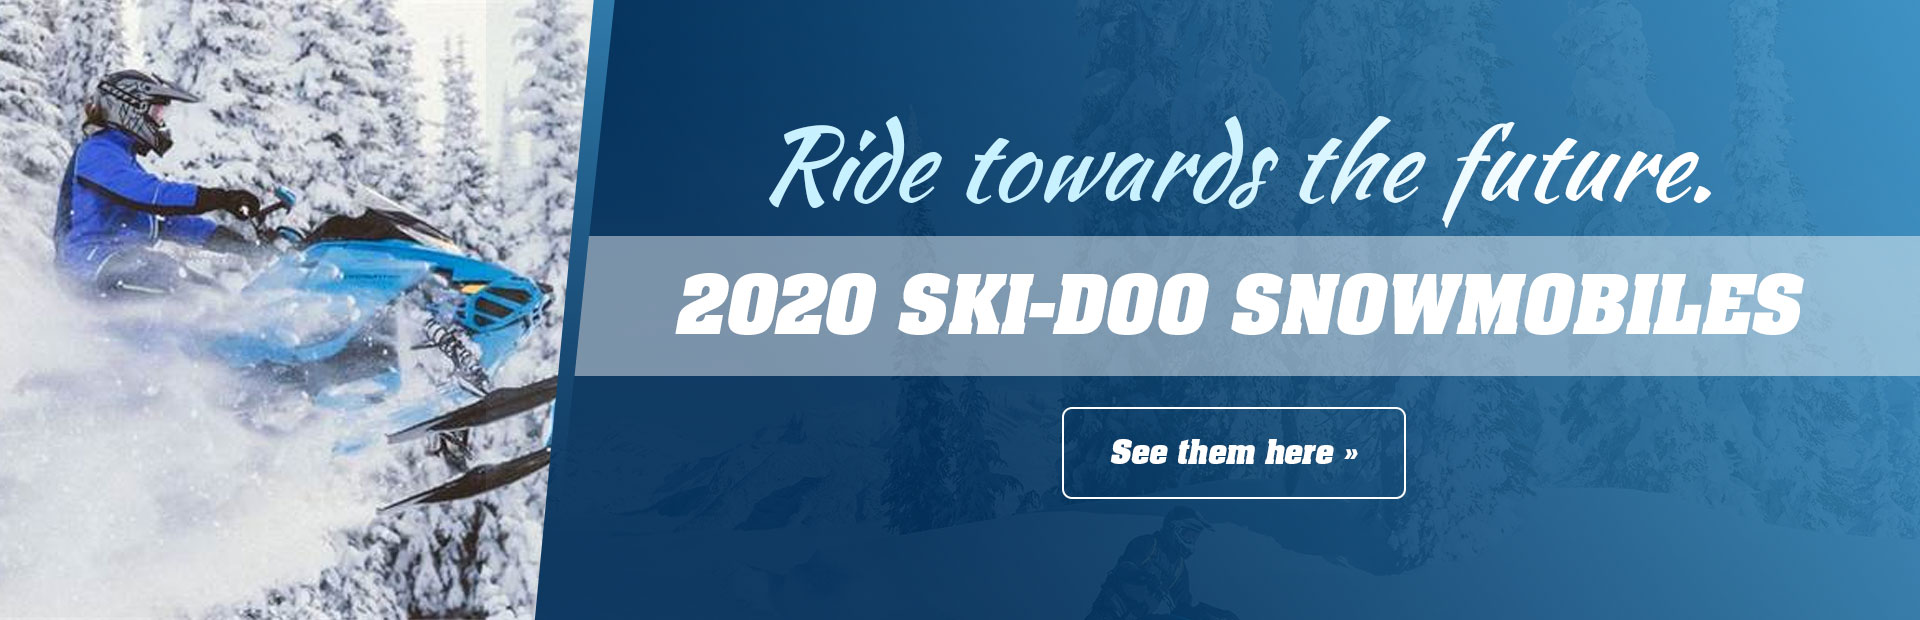 Ride towards the future. 2020 Ski-doo Snowmobiles: Click here to view our models.